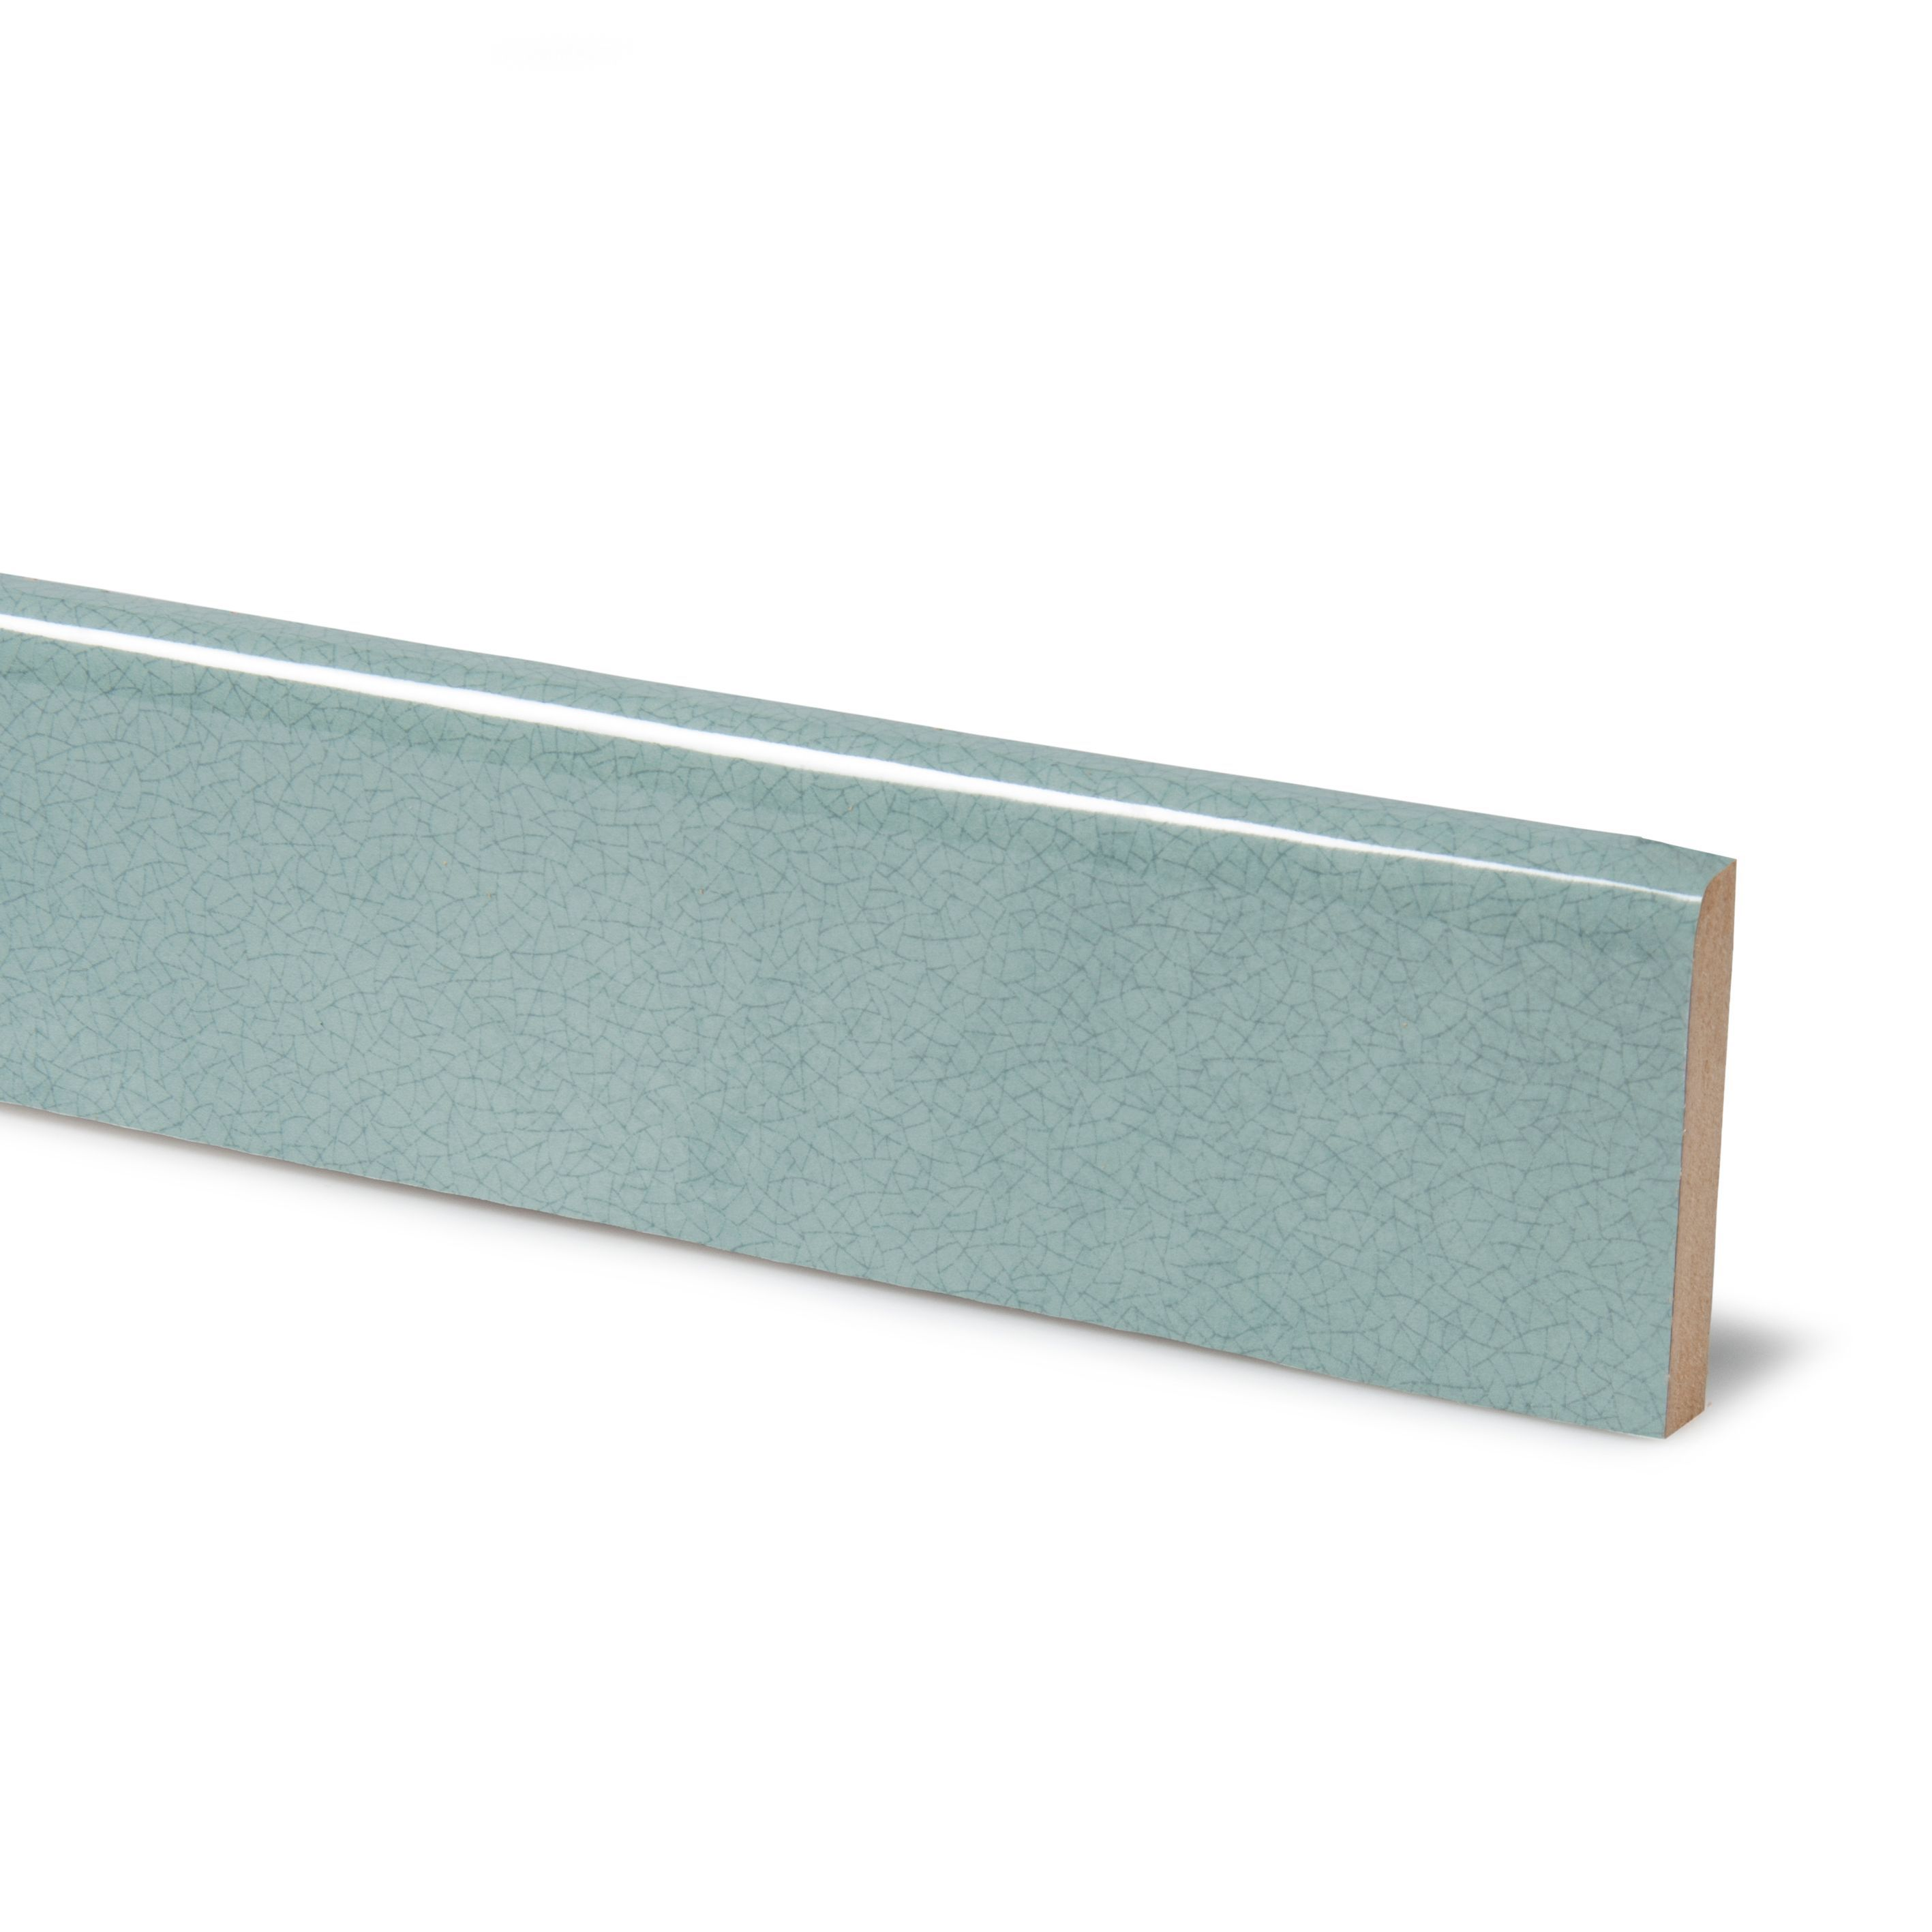 12mm Cracked glass Grey Laminate Upstand | Departments | DIY at B&Q